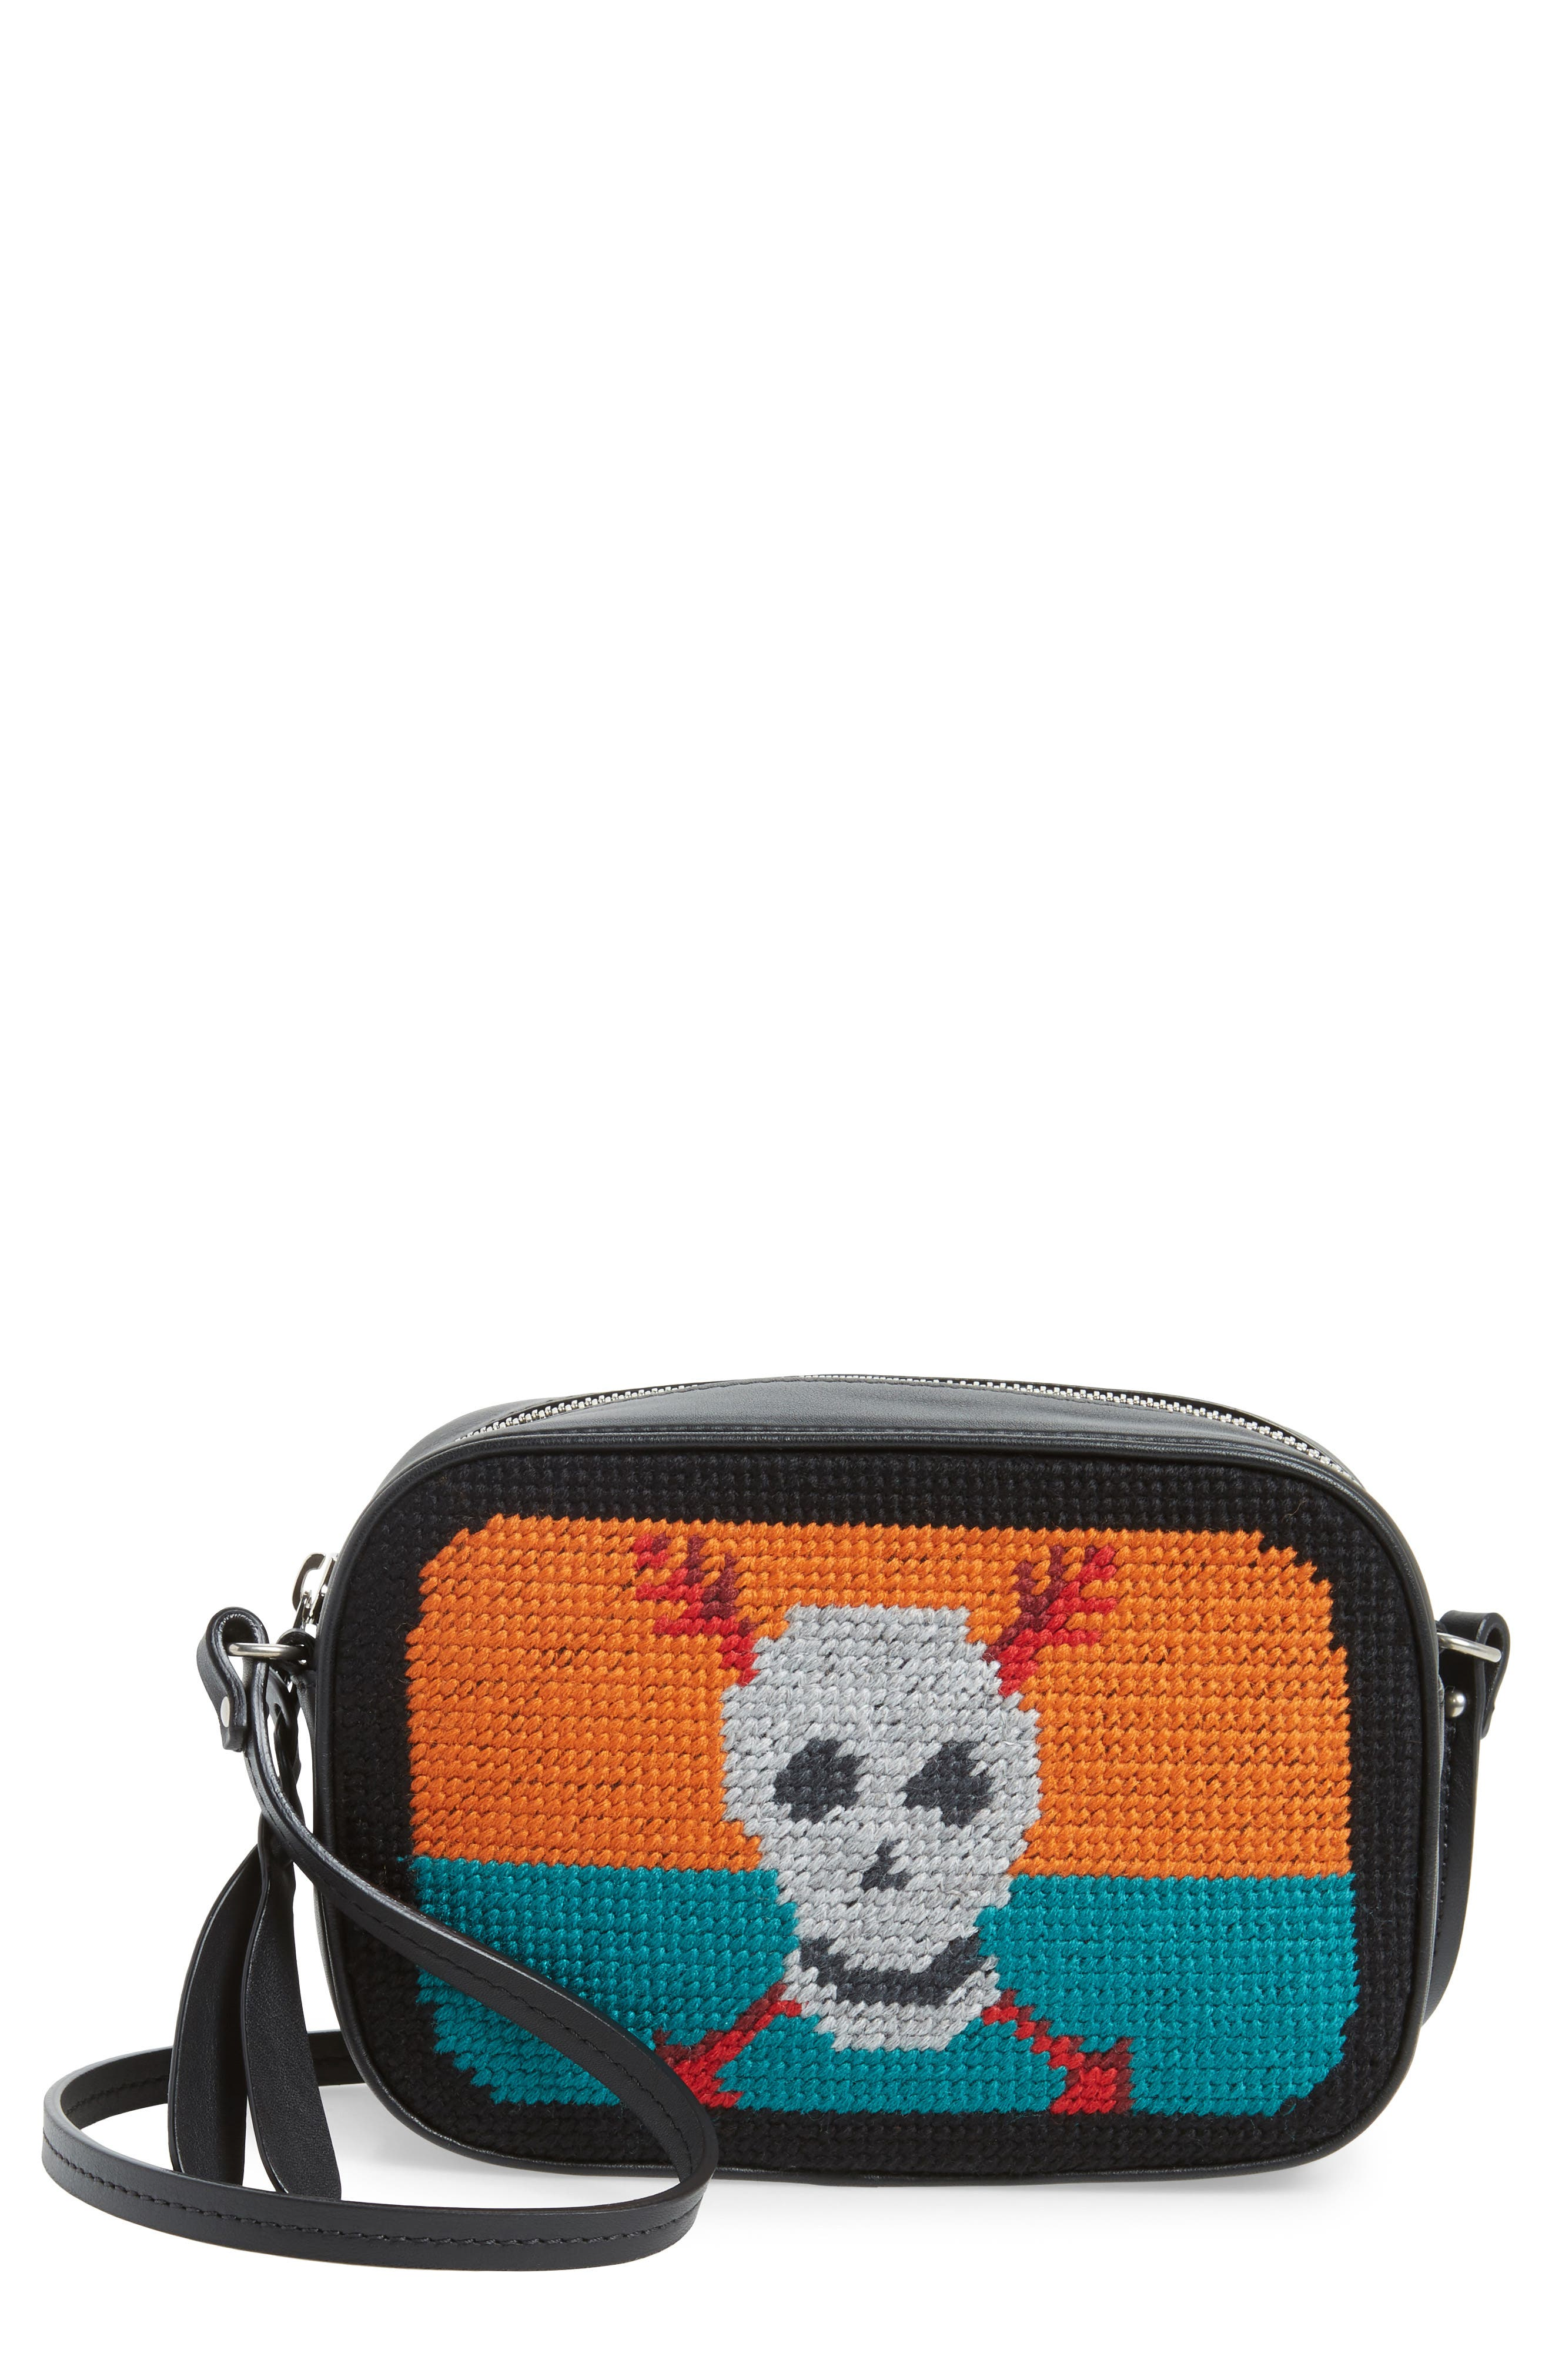 Main Image - Alexander McQueen Small Embroidered Leather Camera Bag